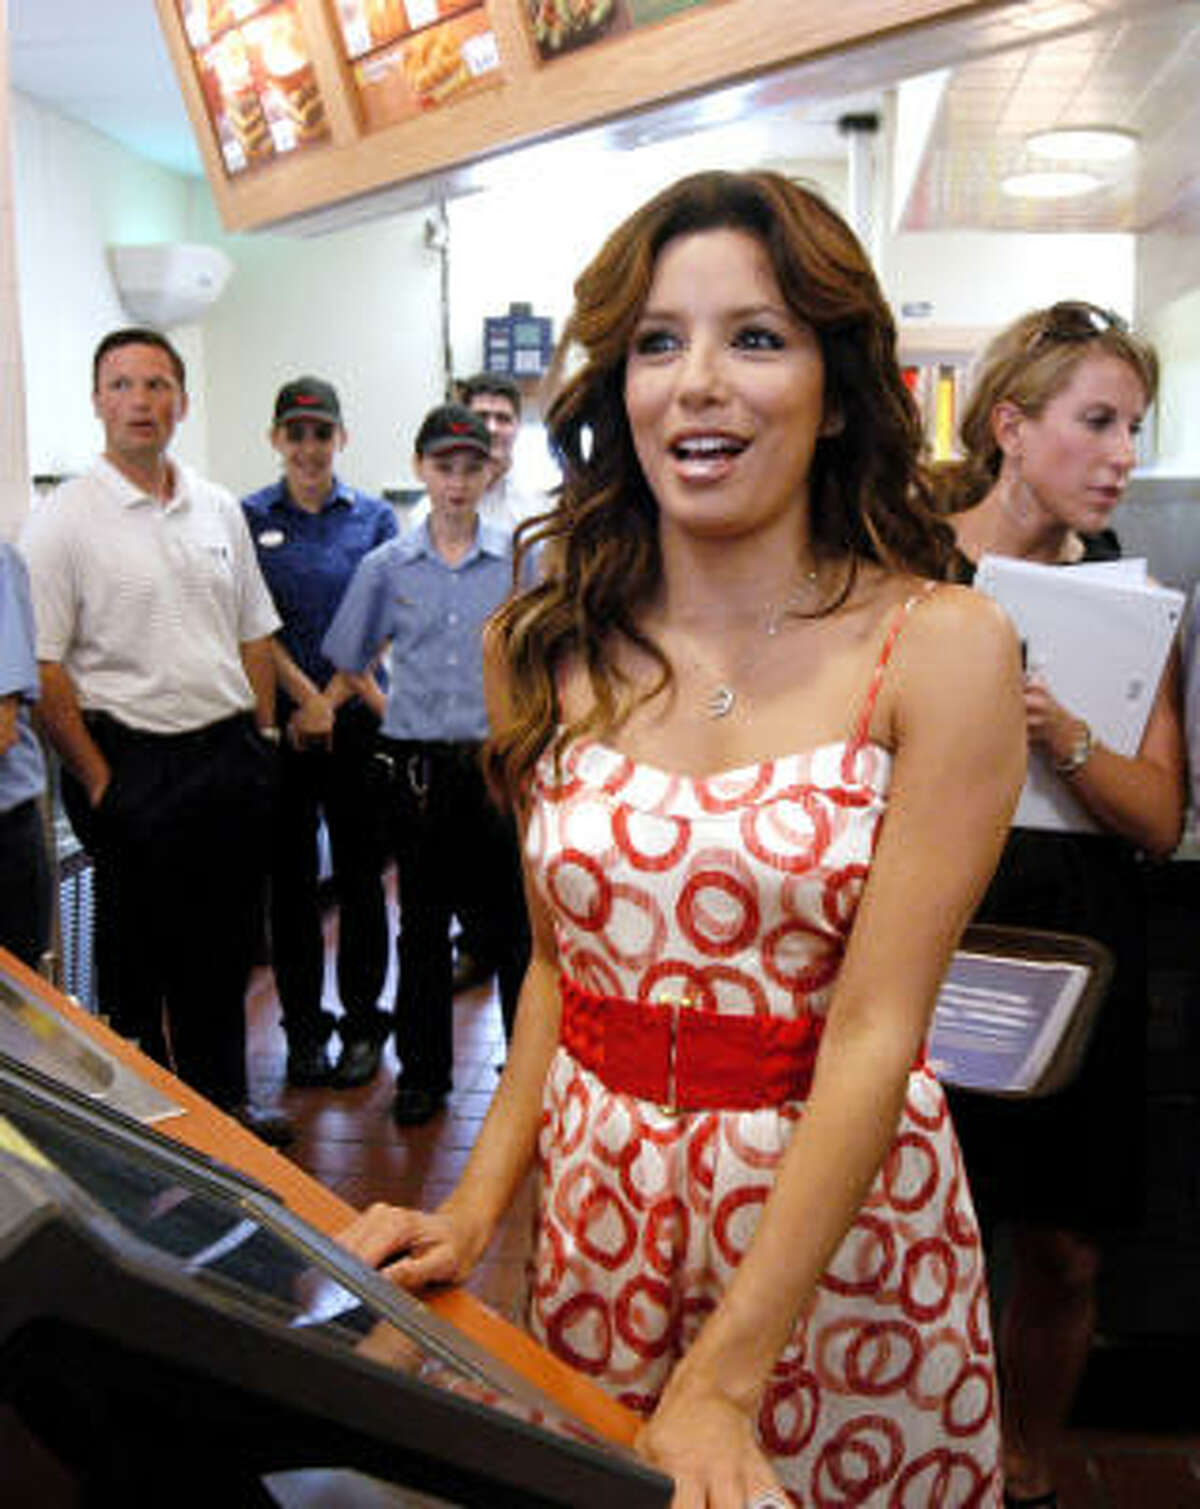 May 27, 2008: Longoria works at the Wendy's drive-thru in her hometown of Corpus Christi as part of the